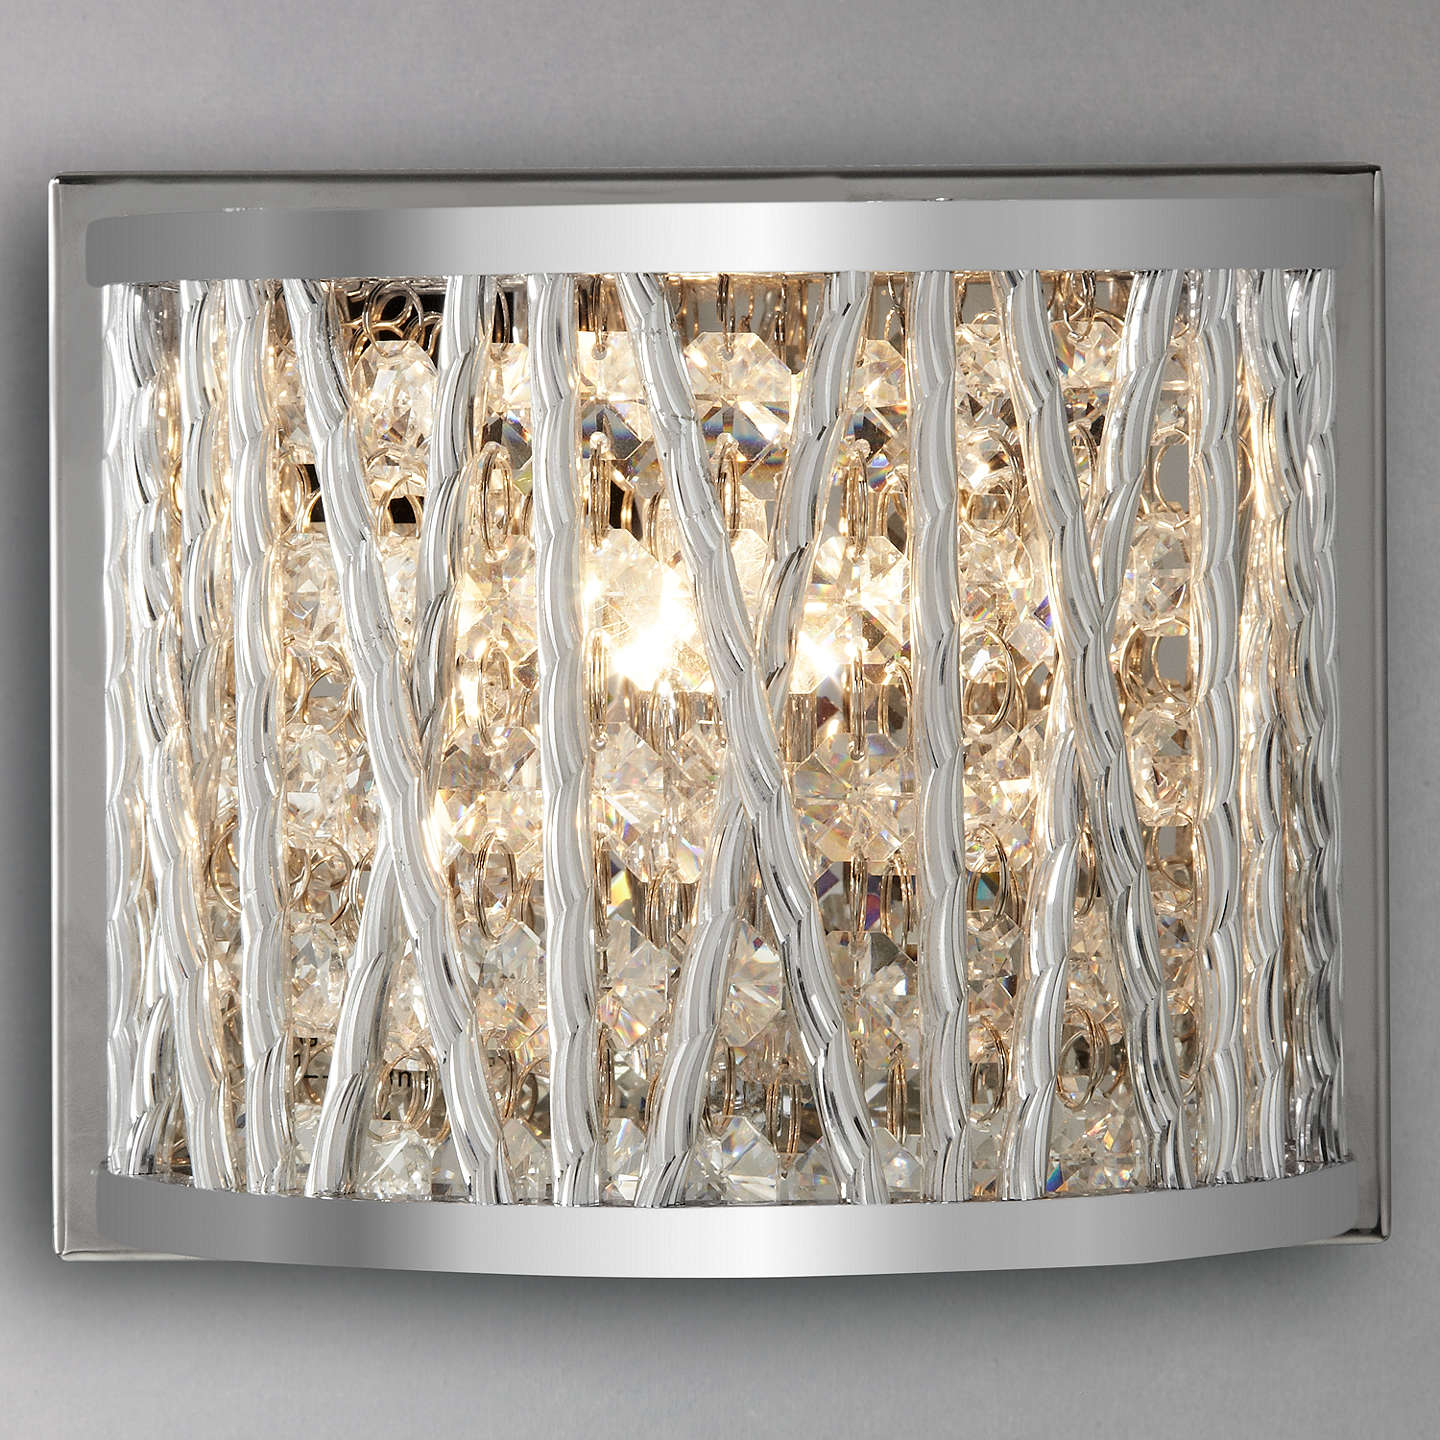 John lewis emilia crystal drum wall light at john lewis buyjohn lewis emilia crystal drum wall light online at johnlewis aloadofball Image collections